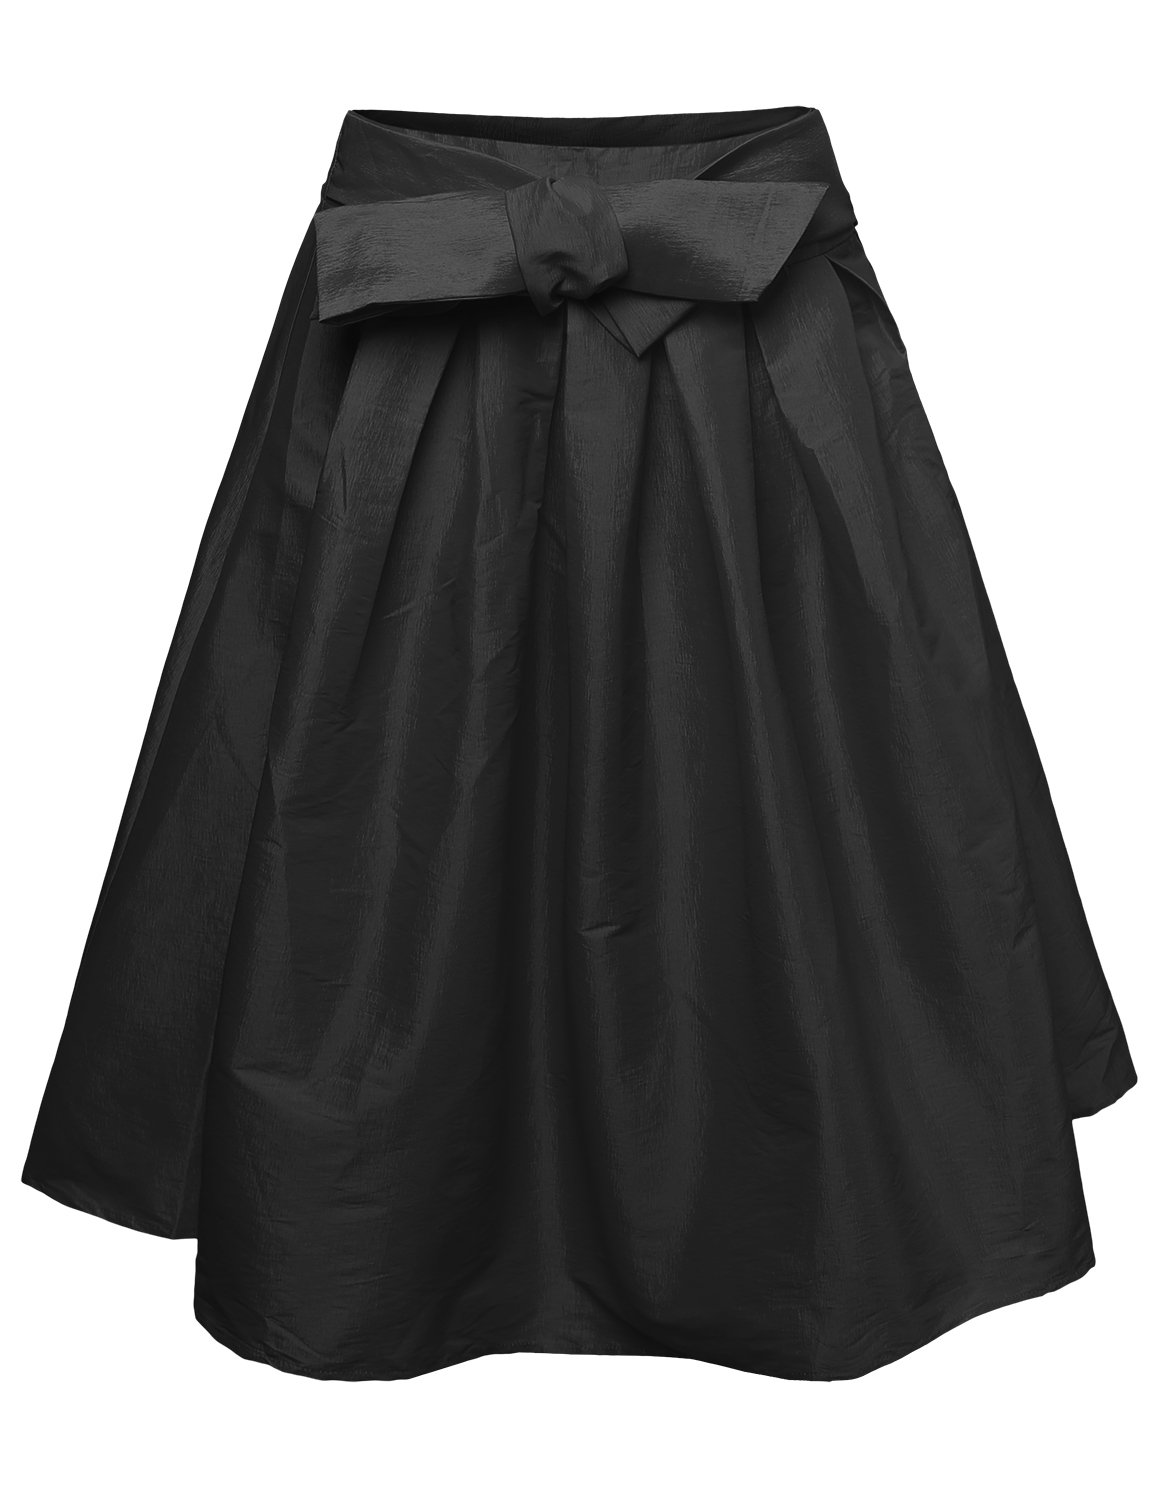 Made by Emma High Waisted A Line Vintage Skater Midi Skirt Pleats Bow Tie Black S Size